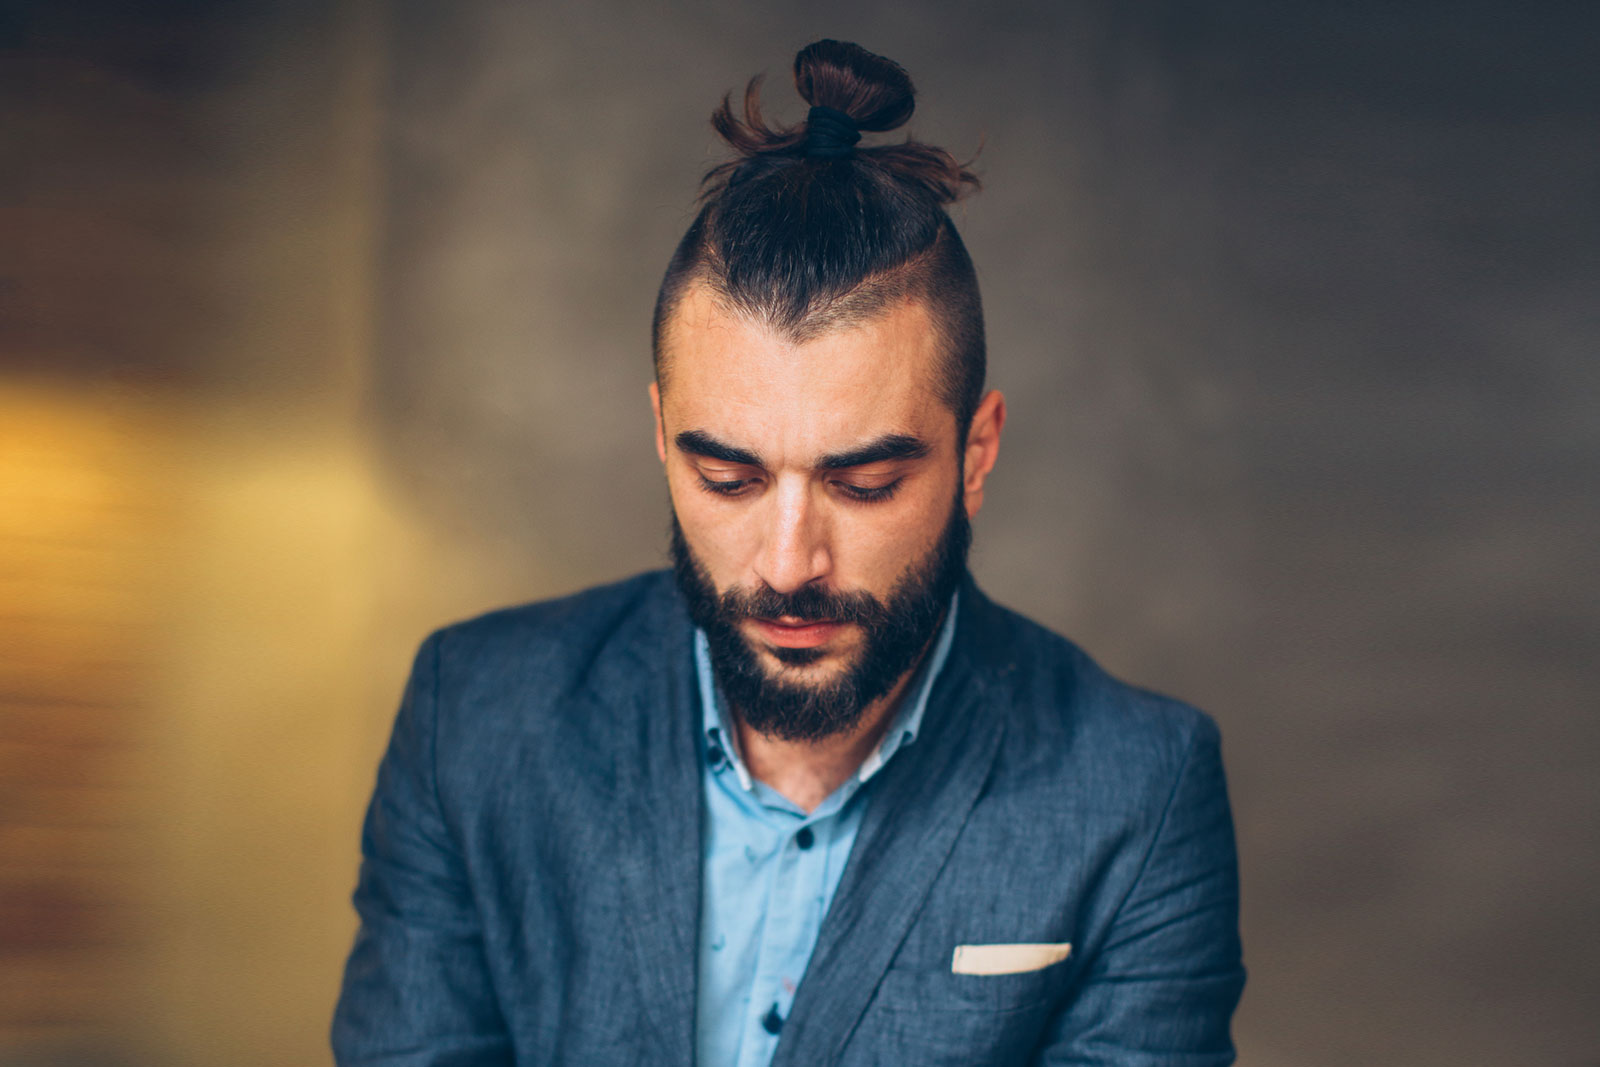 2.7 spiky blonde hair with low fade; The Man Bun Guide 58 Ways To Wear It